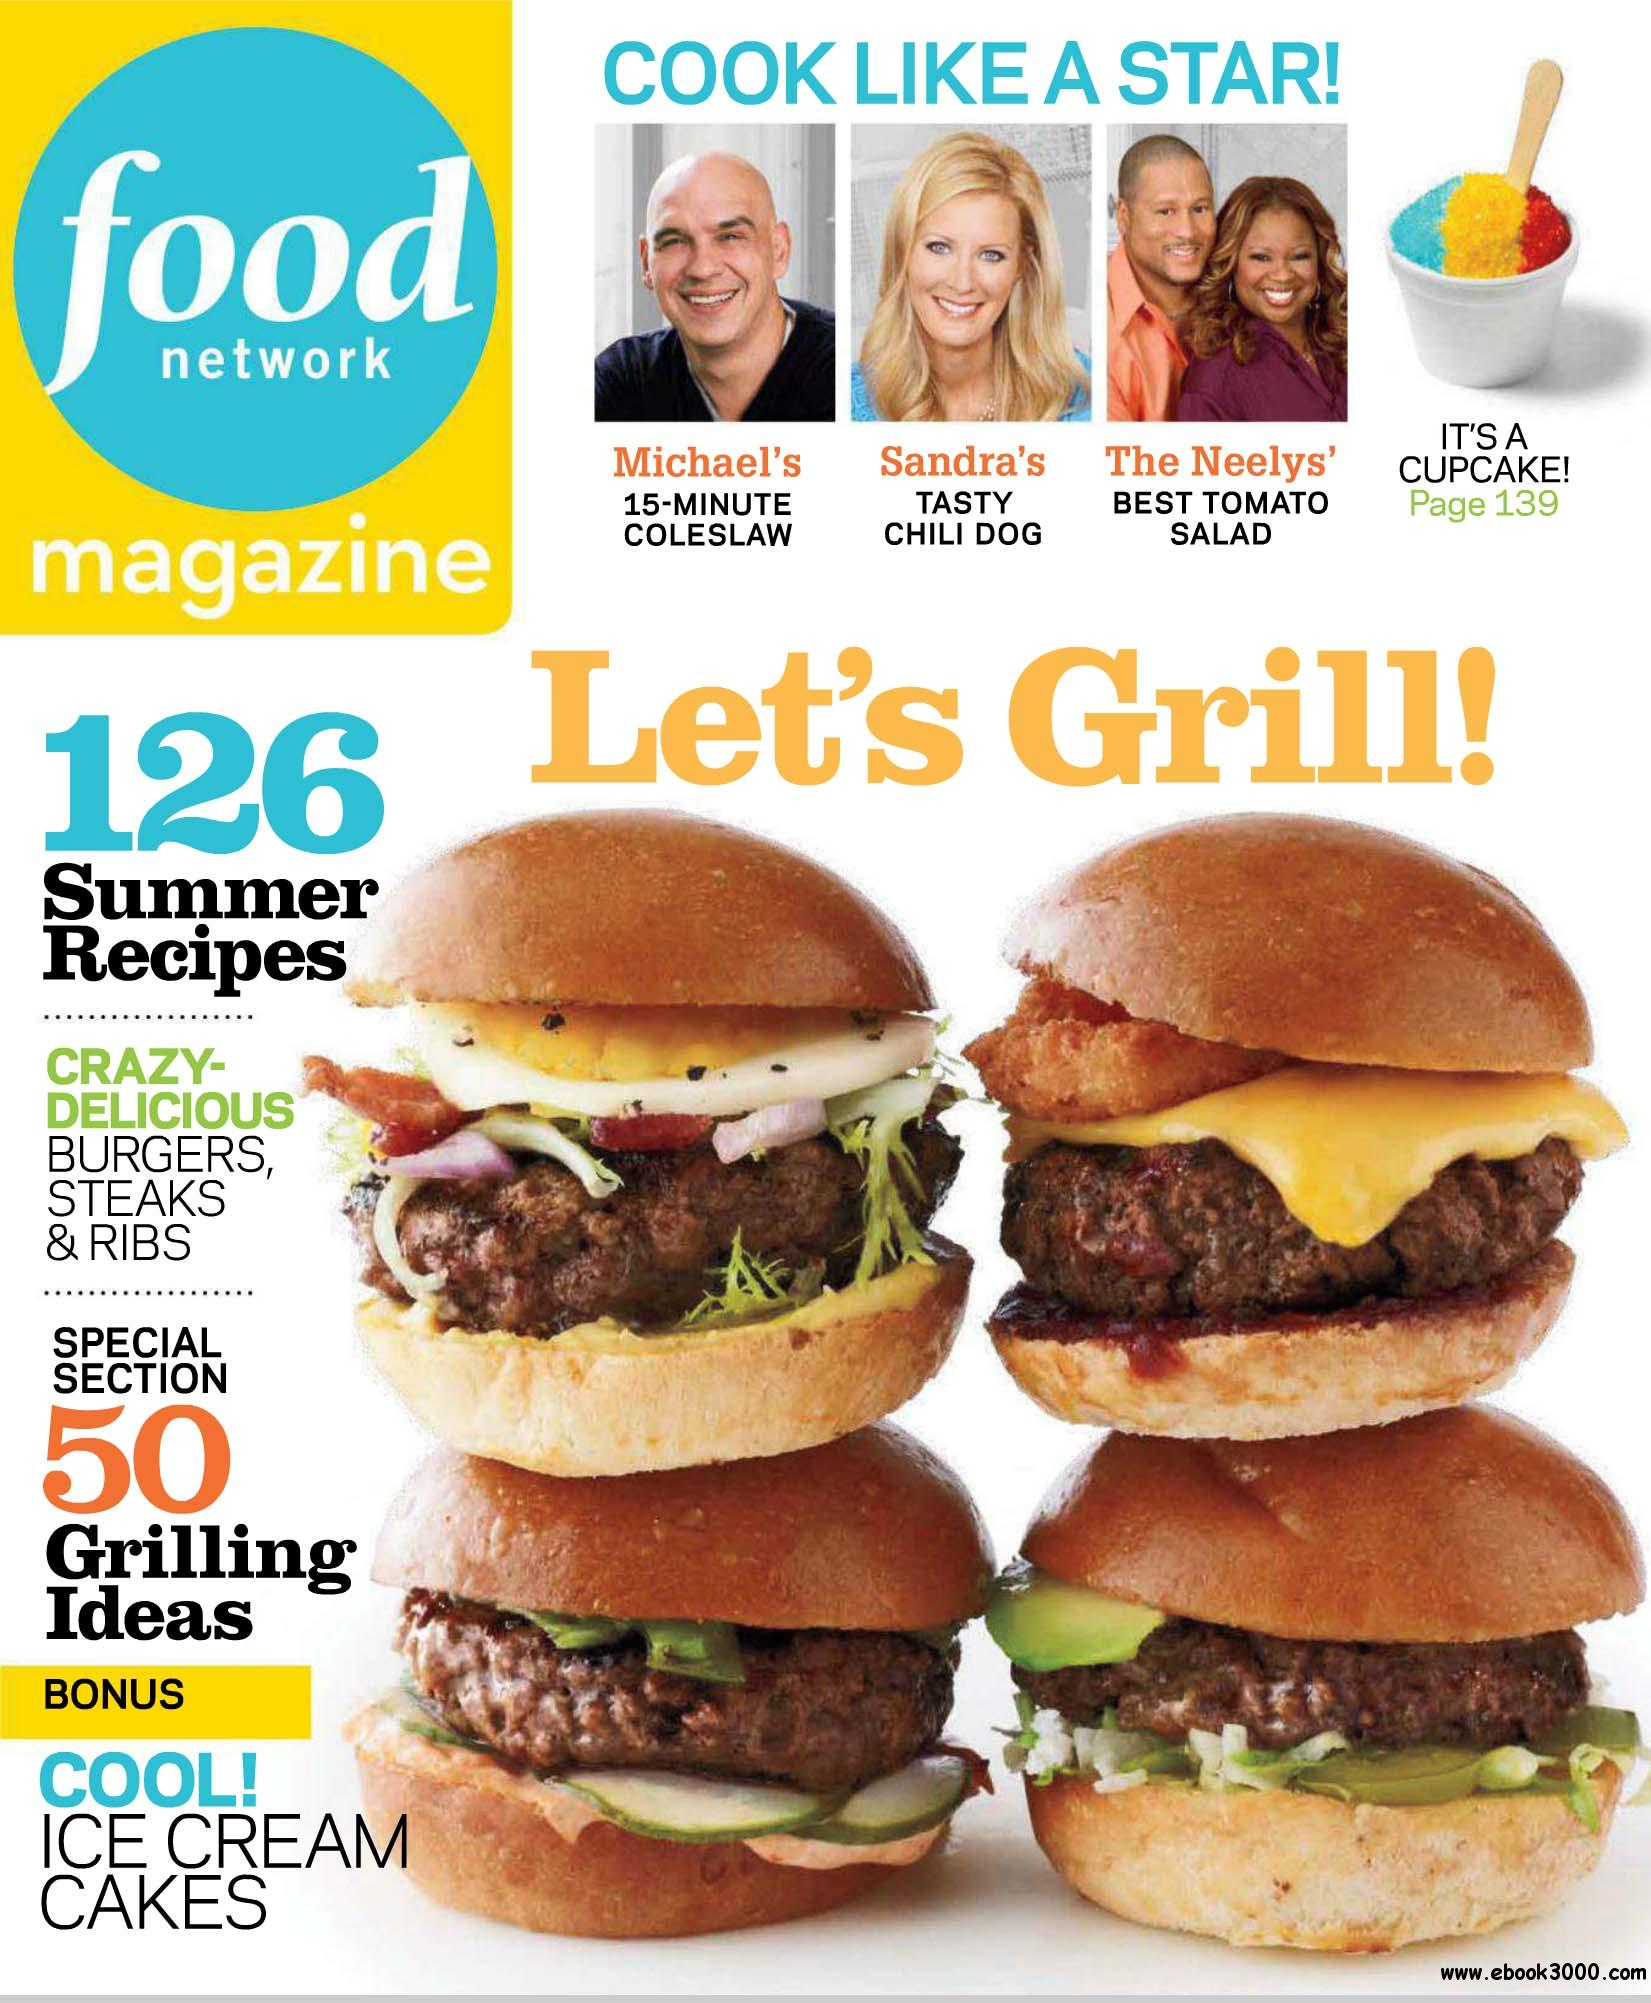 Food Network Magazine, June, 2012: Cover